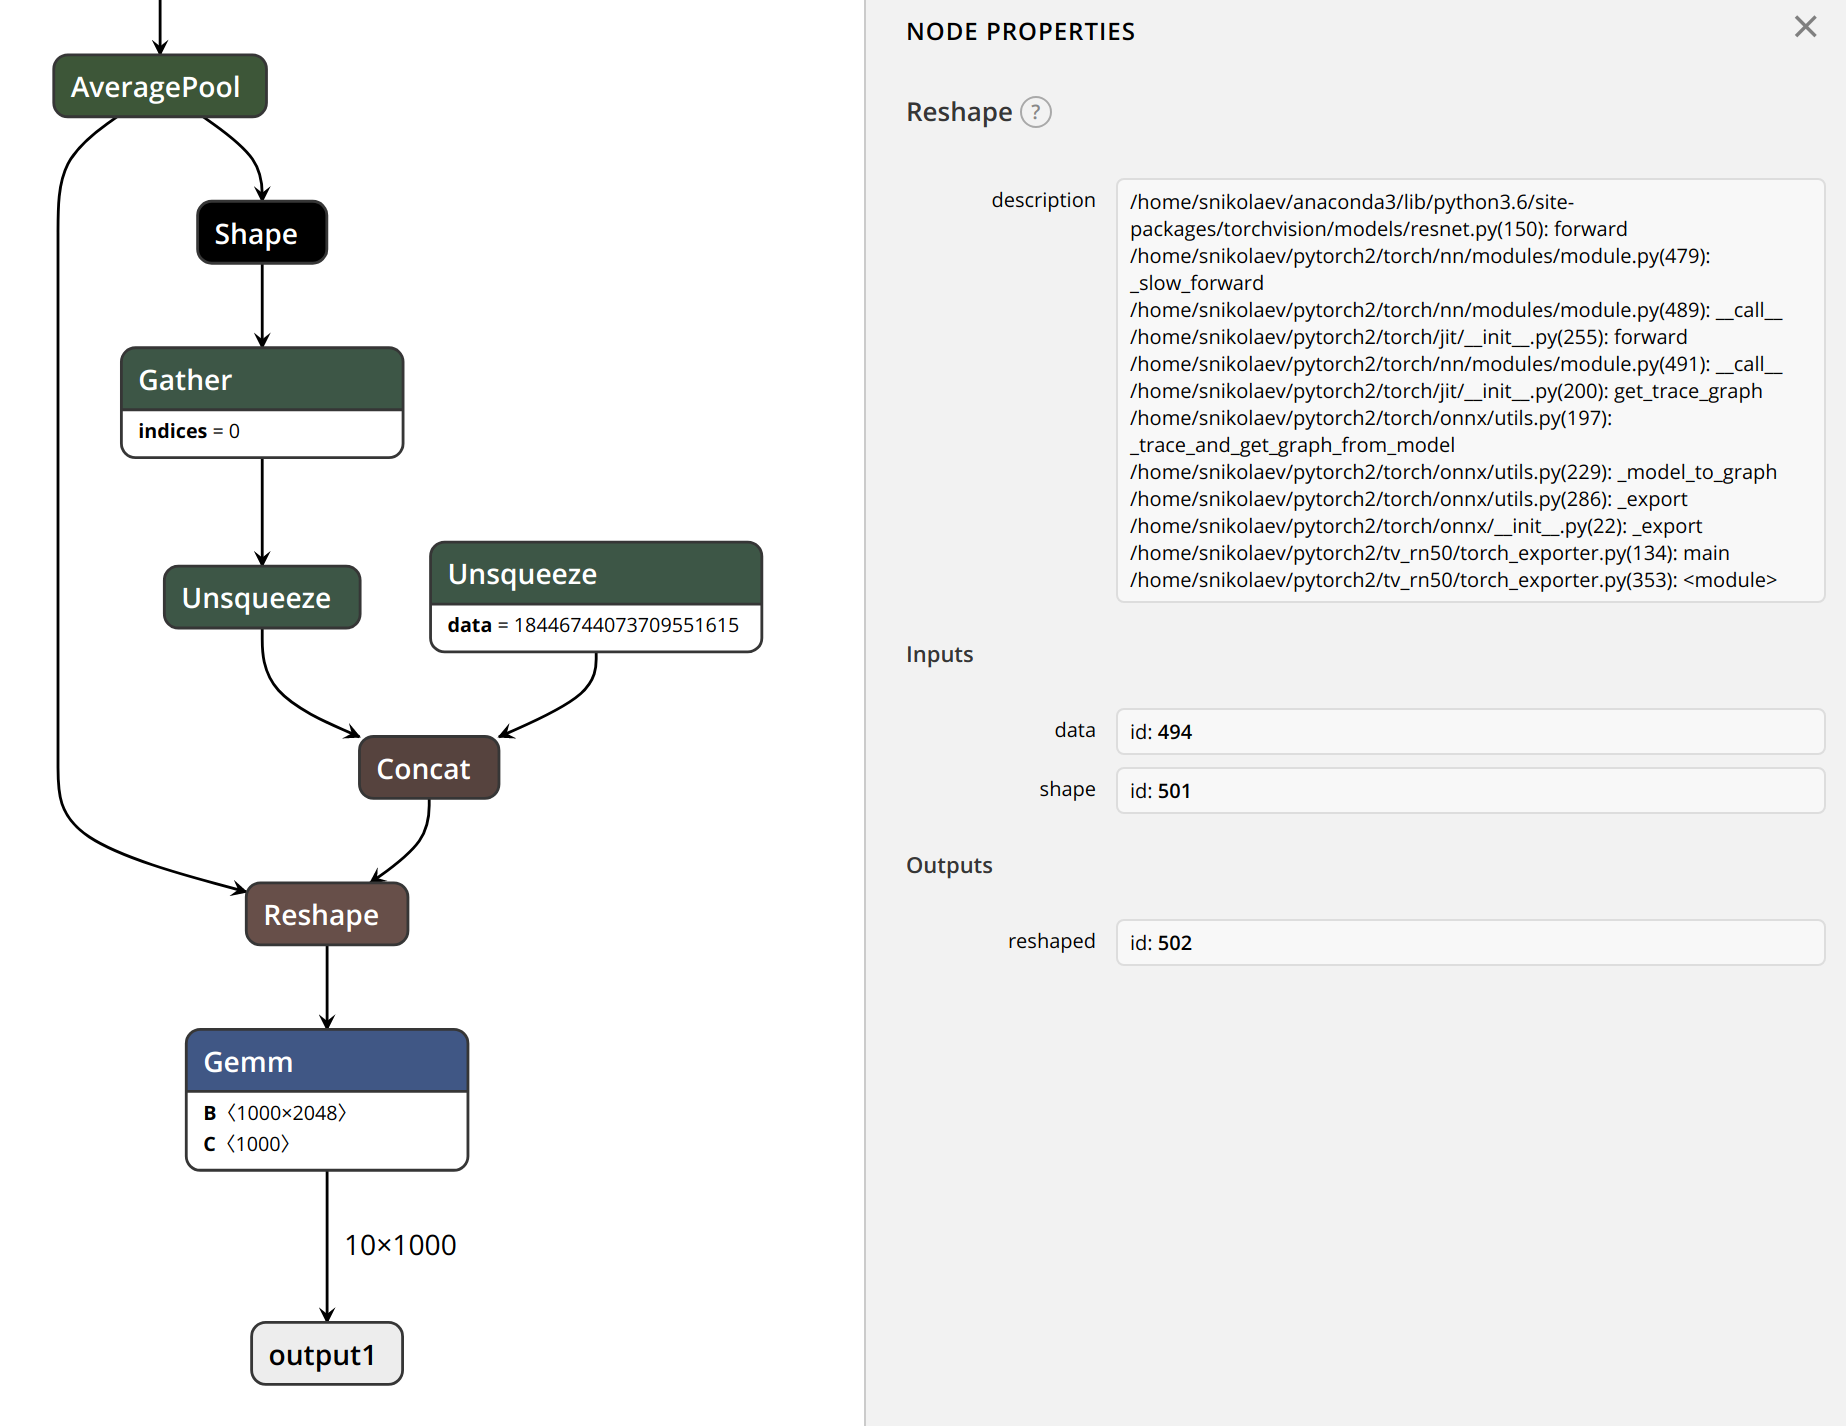 ONNX graph exporter issues from TensorRT 5 perspective